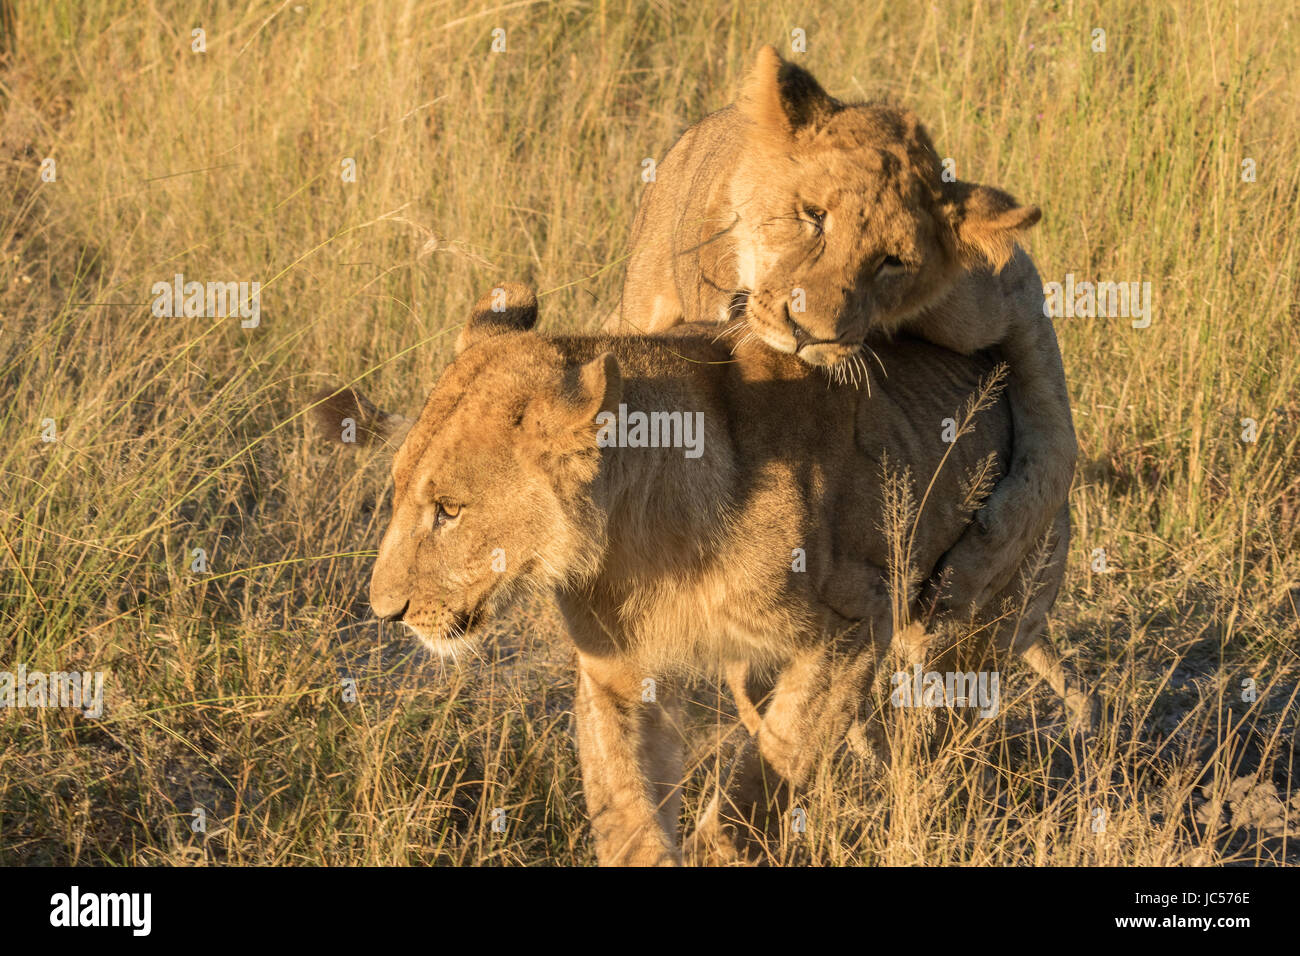 Playful young lions - Stock Image